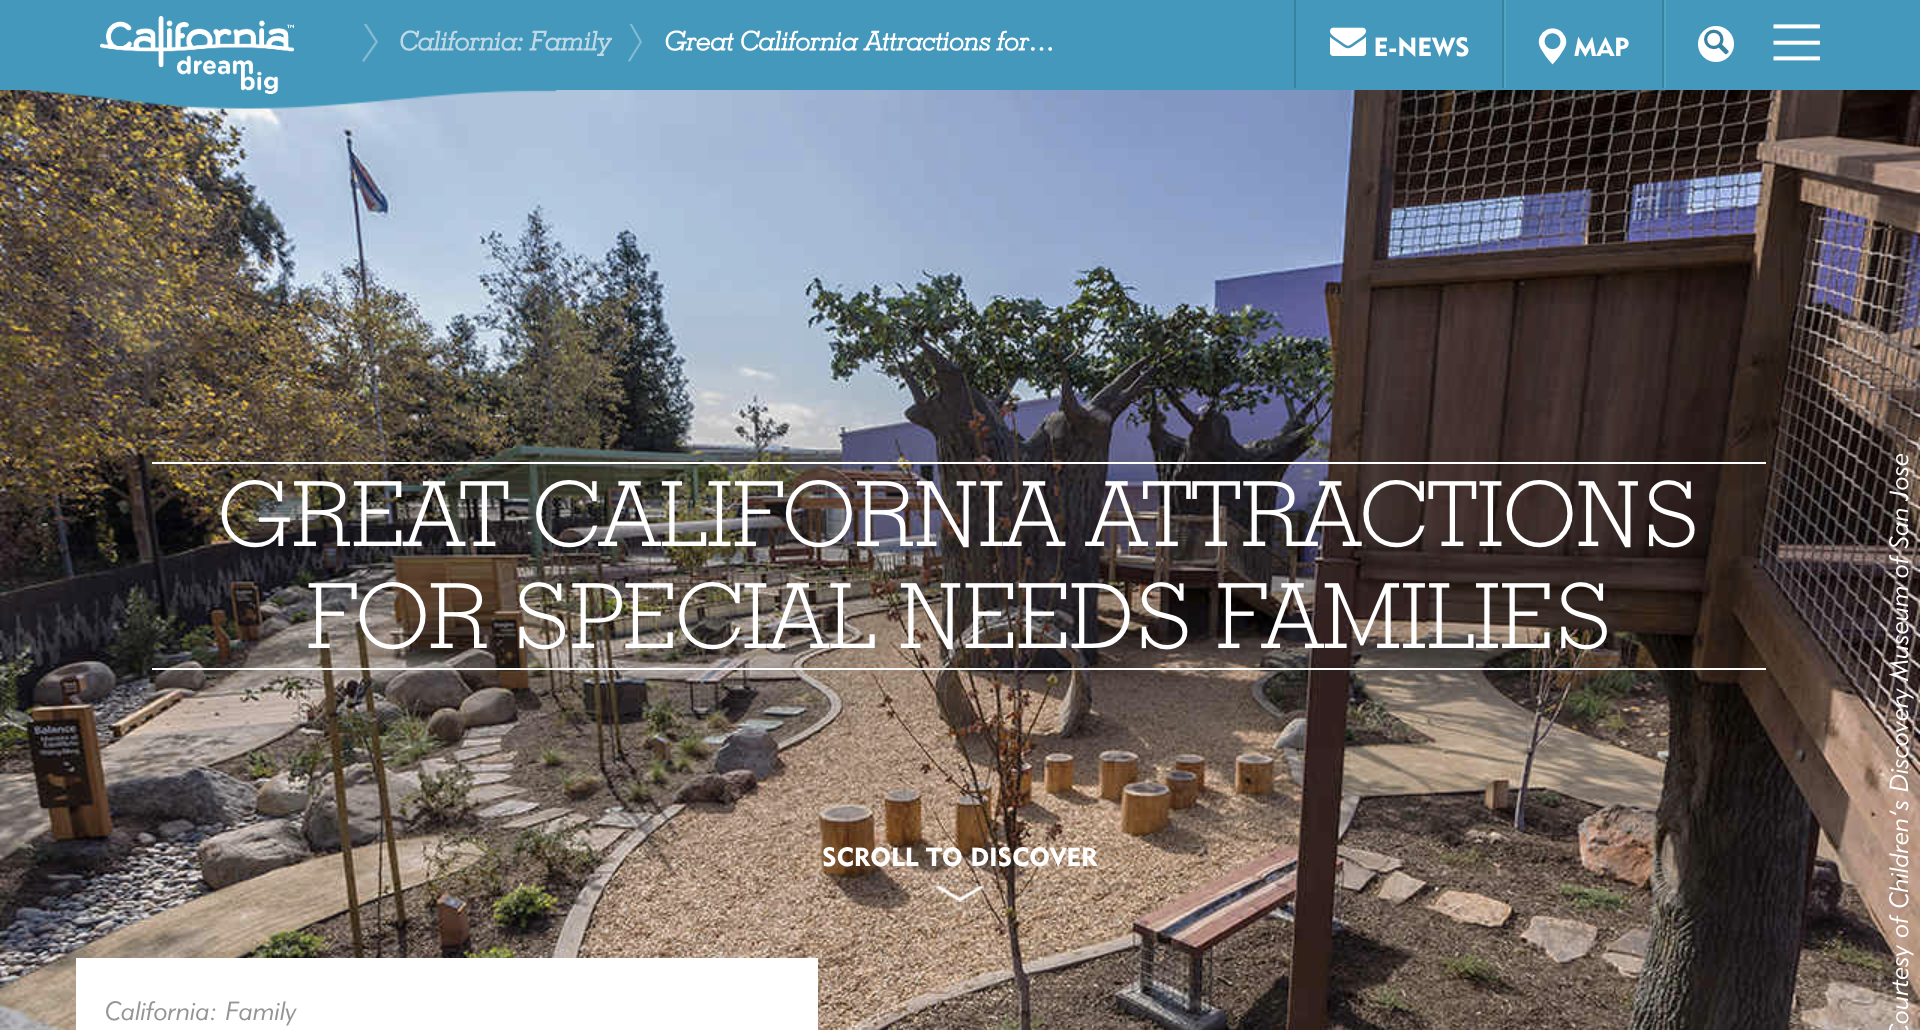 https://www.visitcalifornia.com/attraction/great-california-attractions-special-needs-families